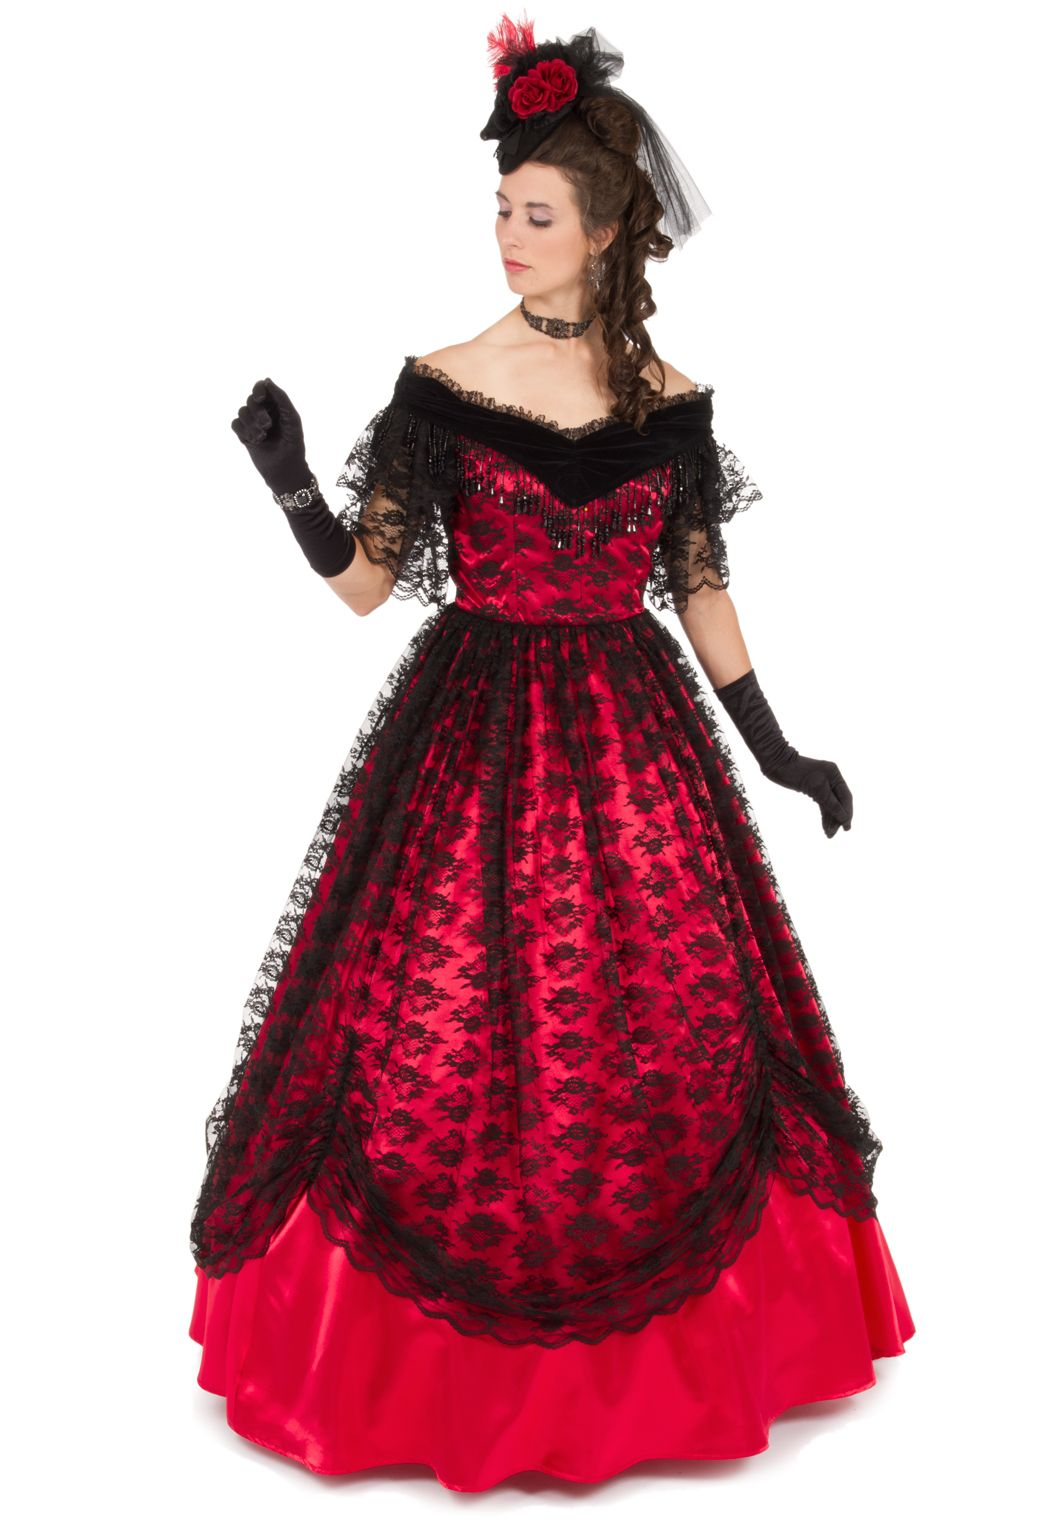 c73ae62ea526 Victorian Civil War Styled Ball Gown in 2019 | Civil War-Victorian Costumes  | Ball gowns, Fashion, Southern belle dress